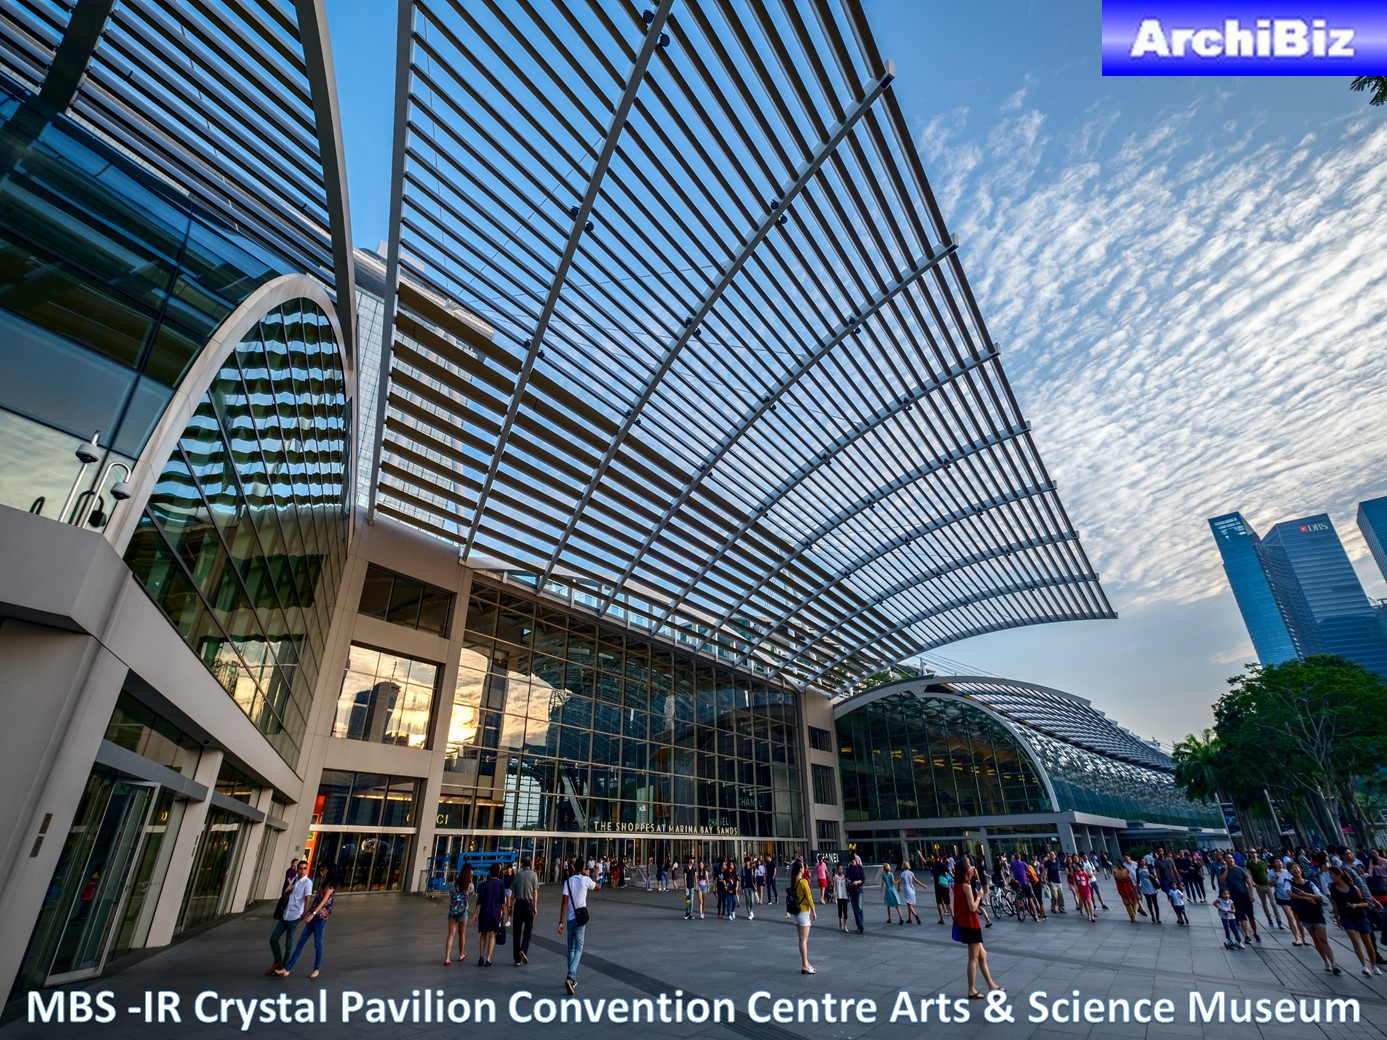 MBS -IR Crystal Pavilion Convention Centre Arts & Science Museum (17)